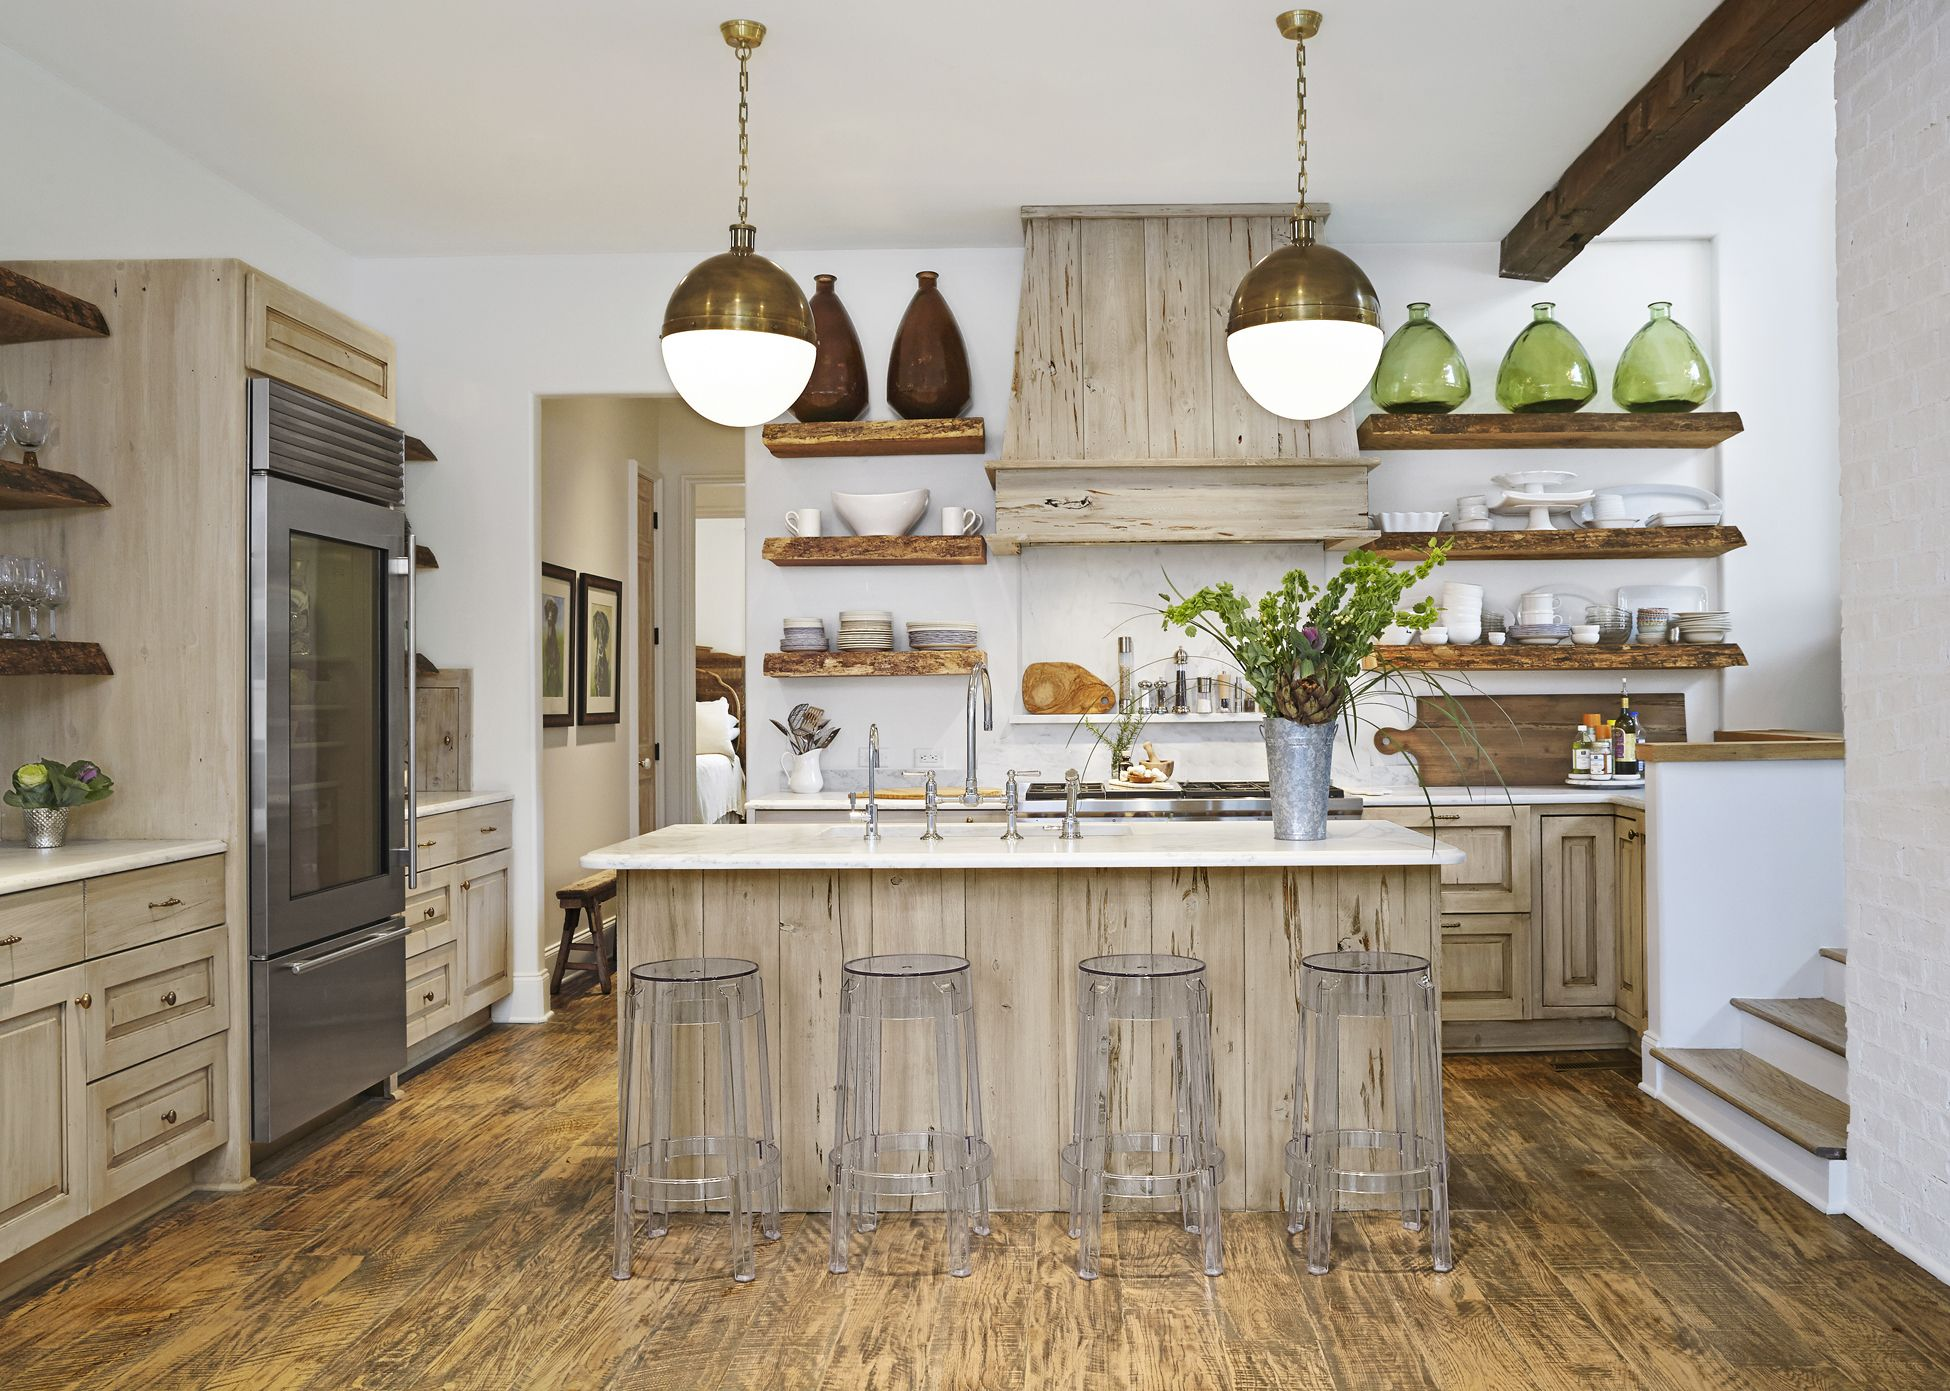 15 Gorgeous Kitchen Trends for 2019 - New Cabinet and Color Design on flooring for bathrooms, flooring for pets, flooring for laundry rooms, flooring for dining room, flooring for country kitchen, flooring for garden, flooring for contemporary kitchen, flooring for modern kitchens, flooring for bedrooms, flooring for countertops, flooring for family, flooring for small kitchen, flooring for living rooms, flooring for home,